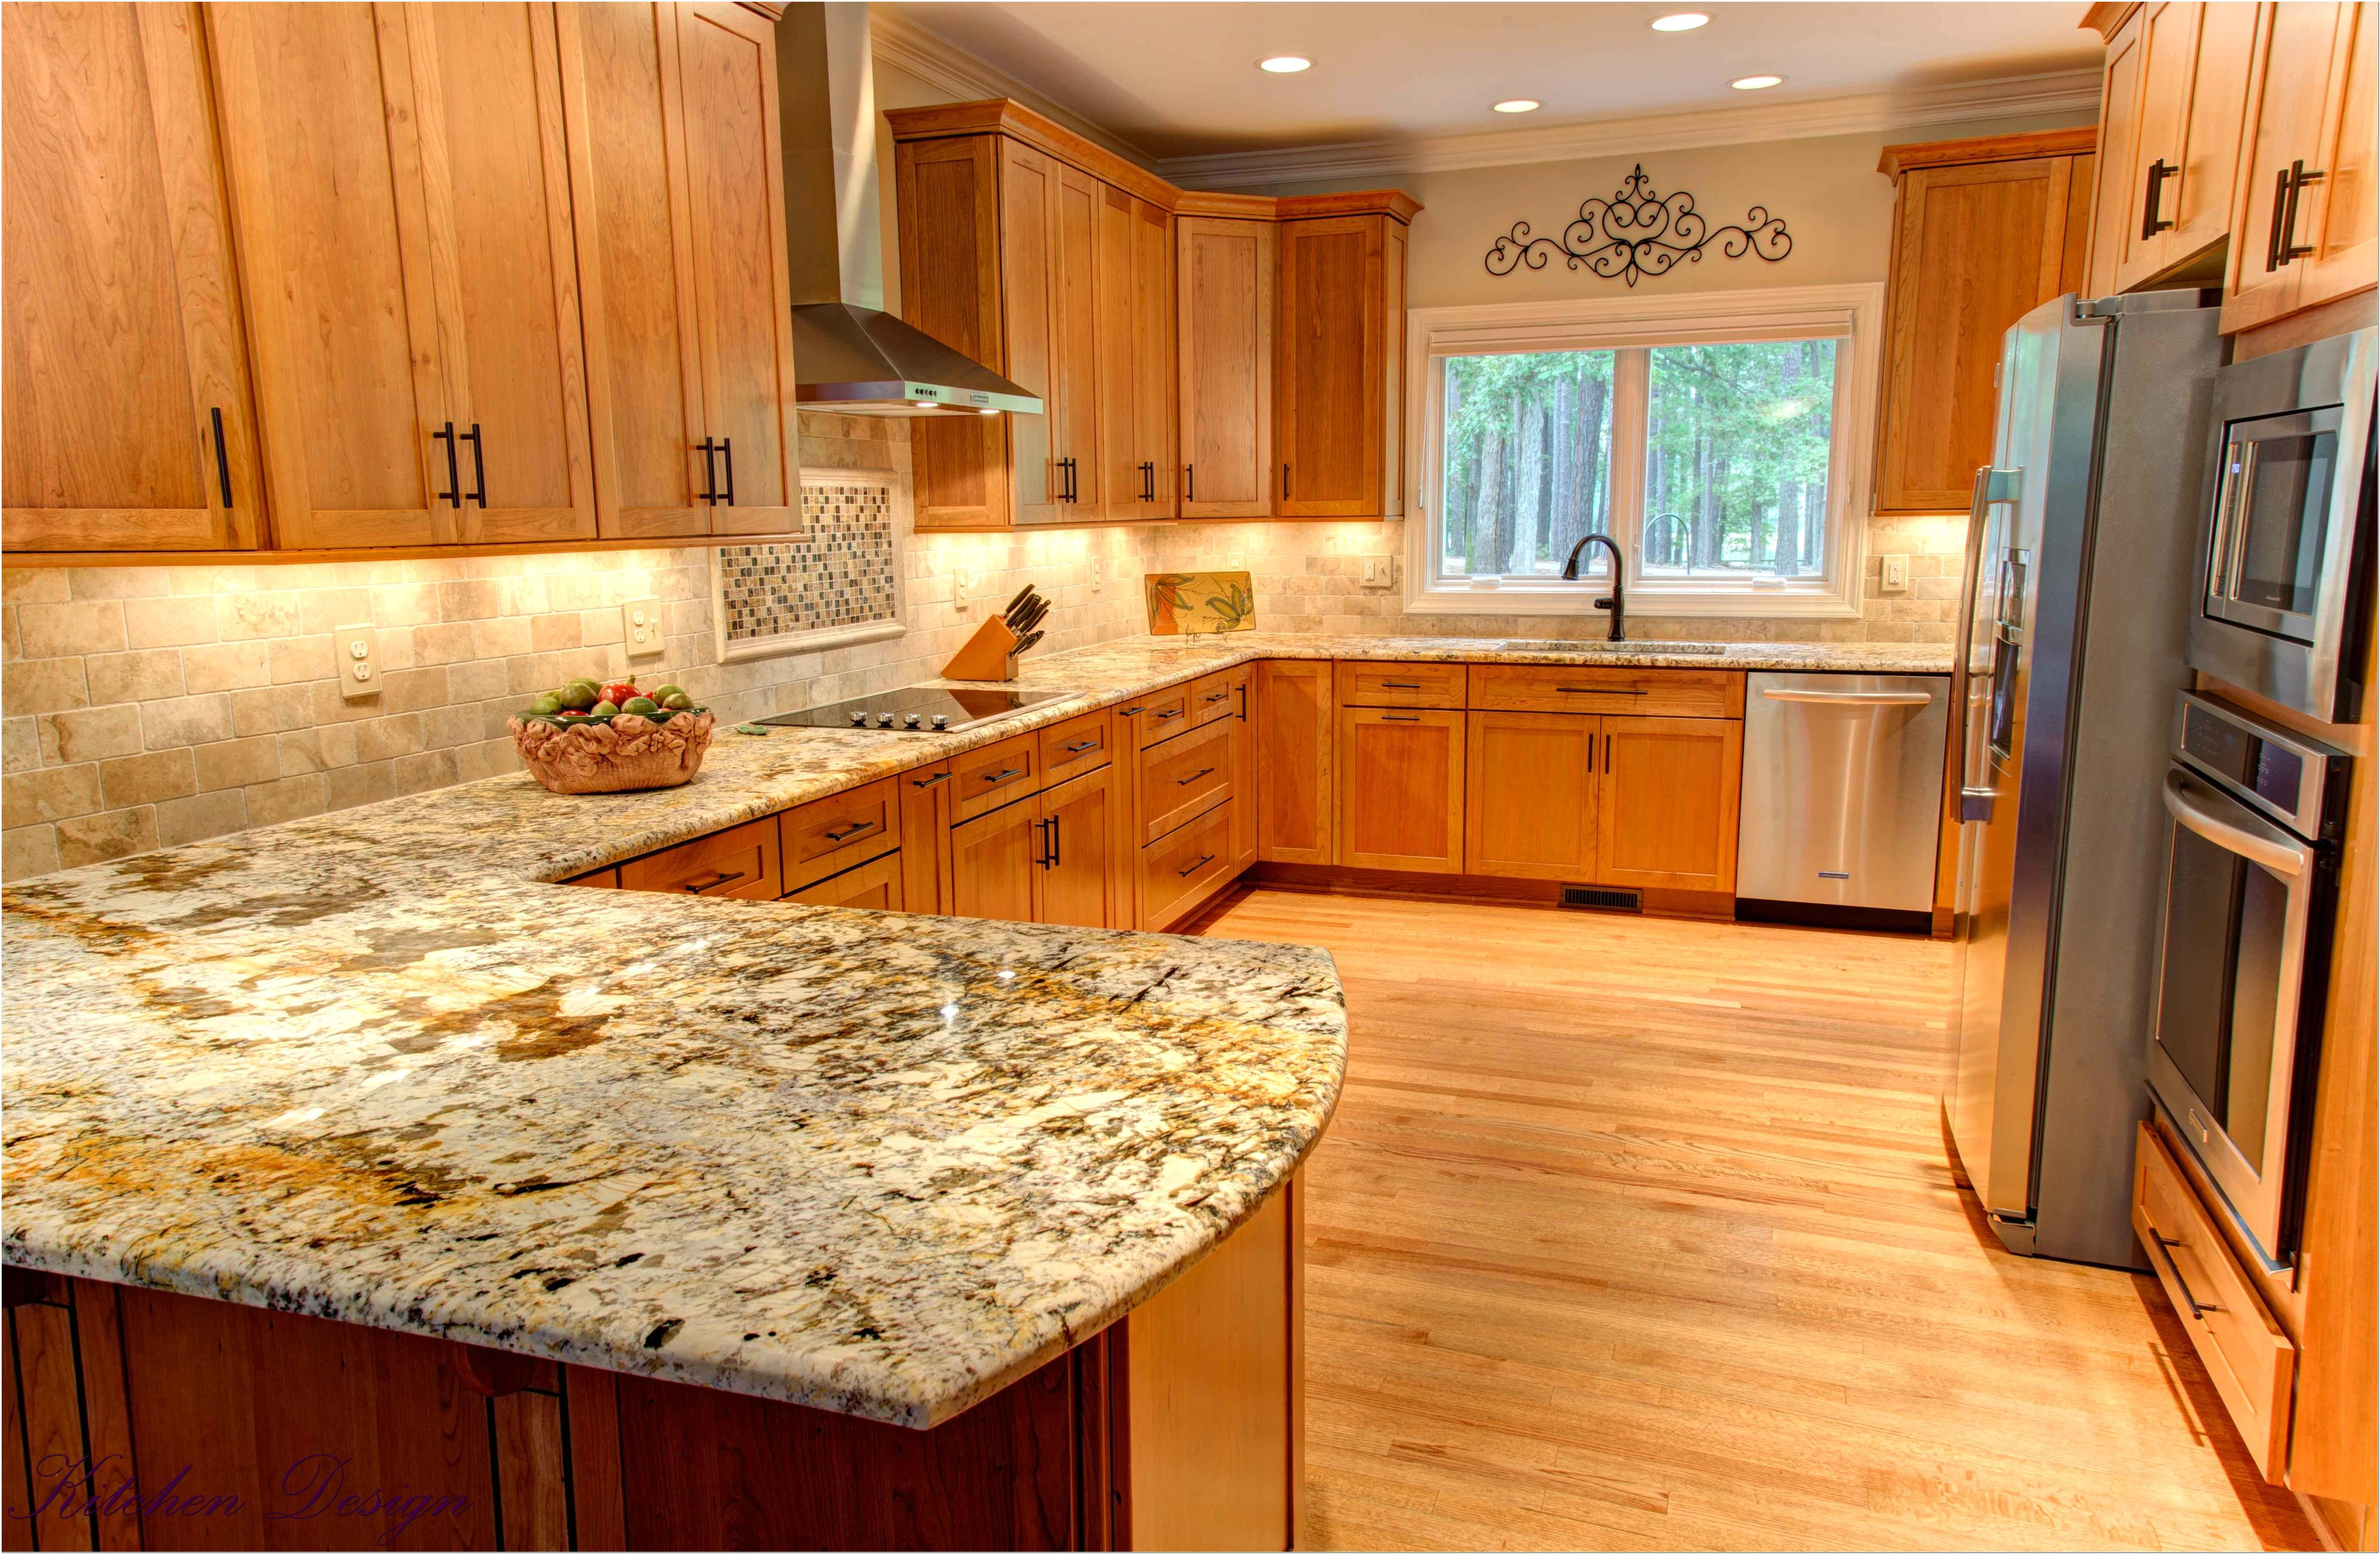 colonial gold granite with maple cabinets | www ... on Pictures Of Granite Countertops With Maple Cabinets  id=36293